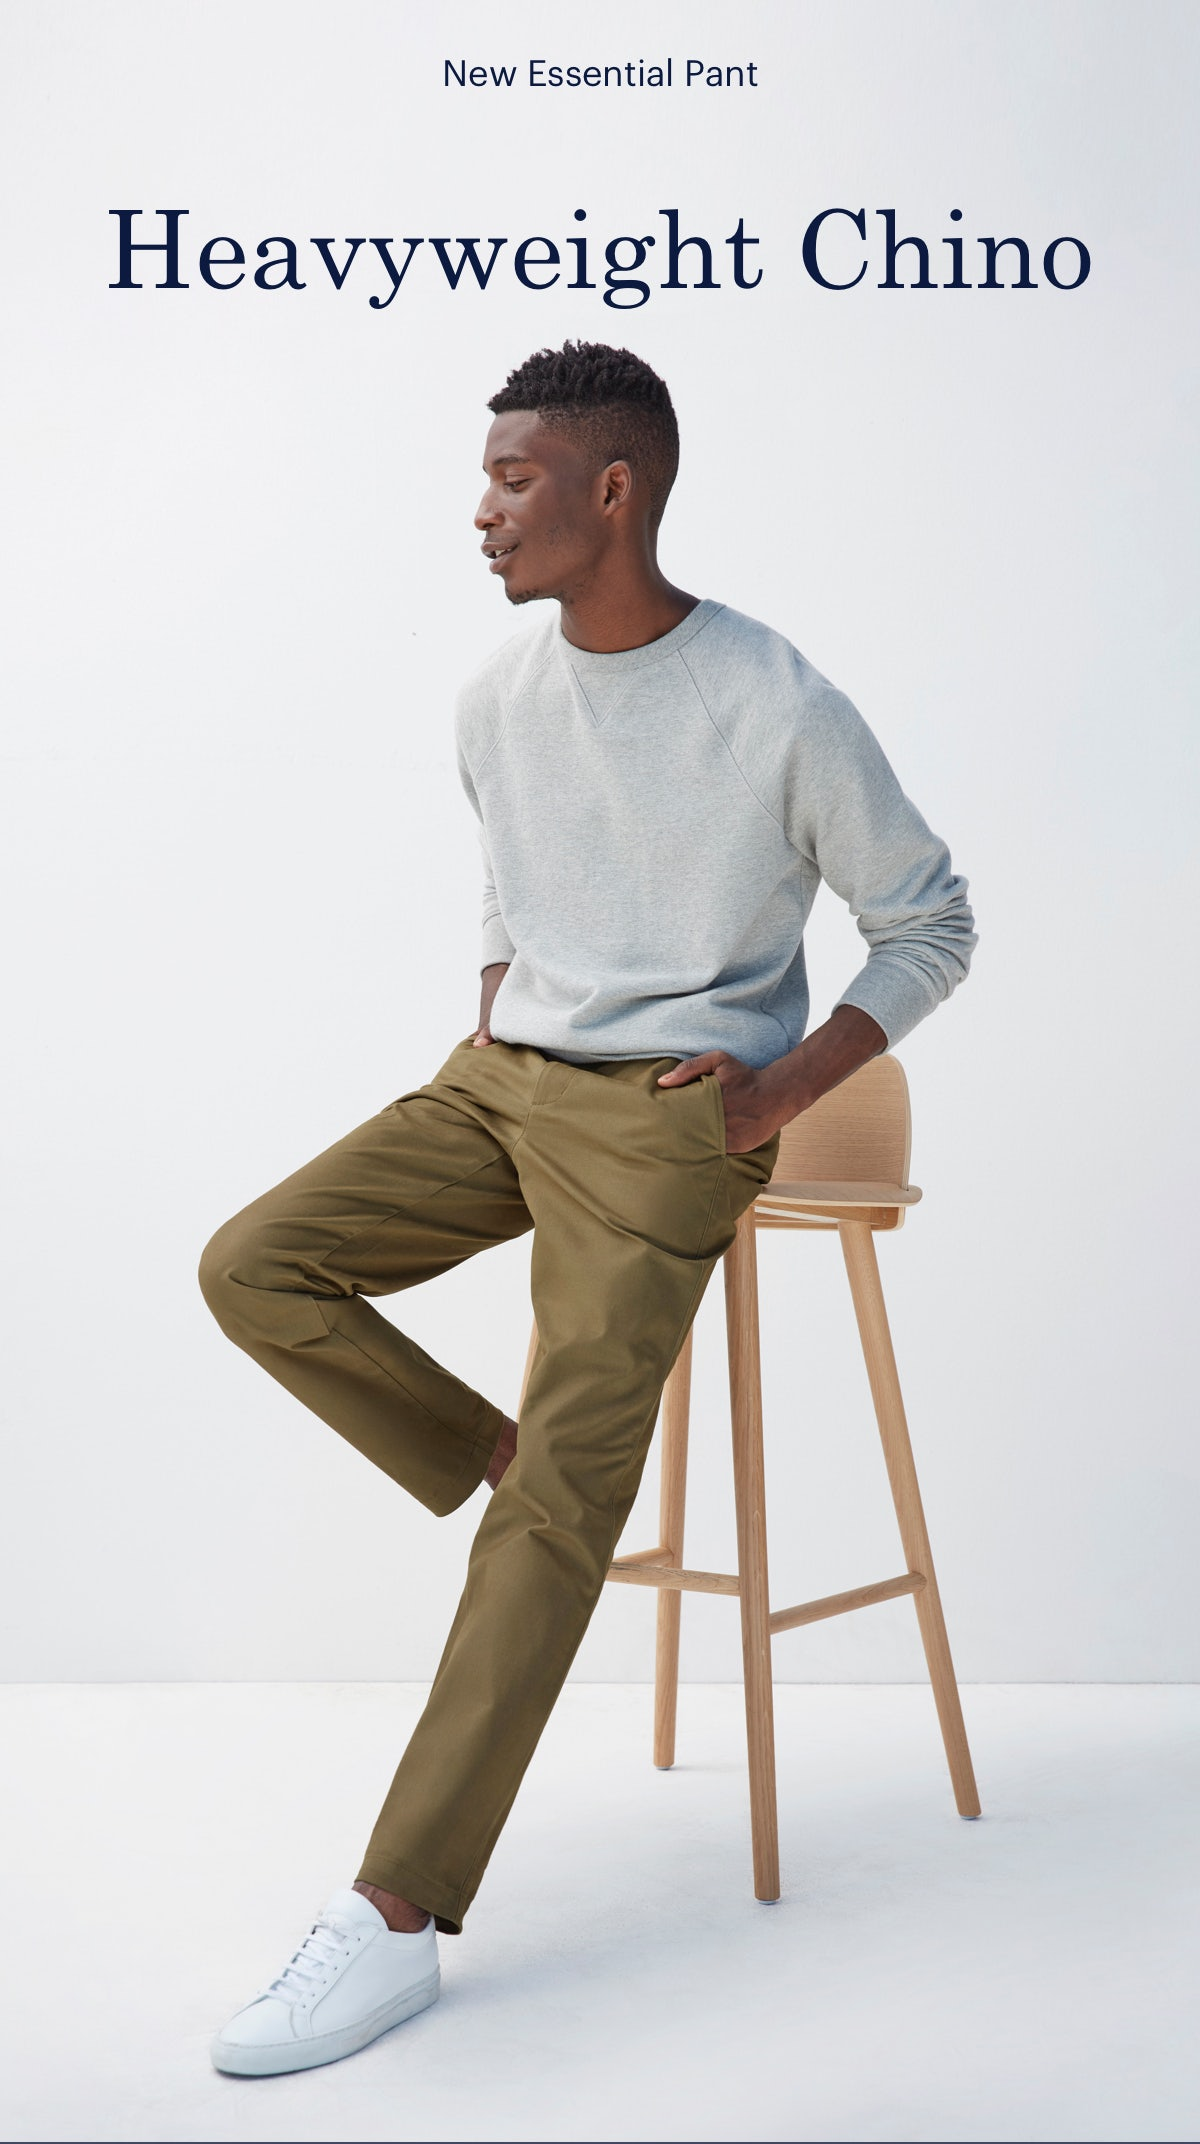 New Essential Pant. Heavyweight Chino